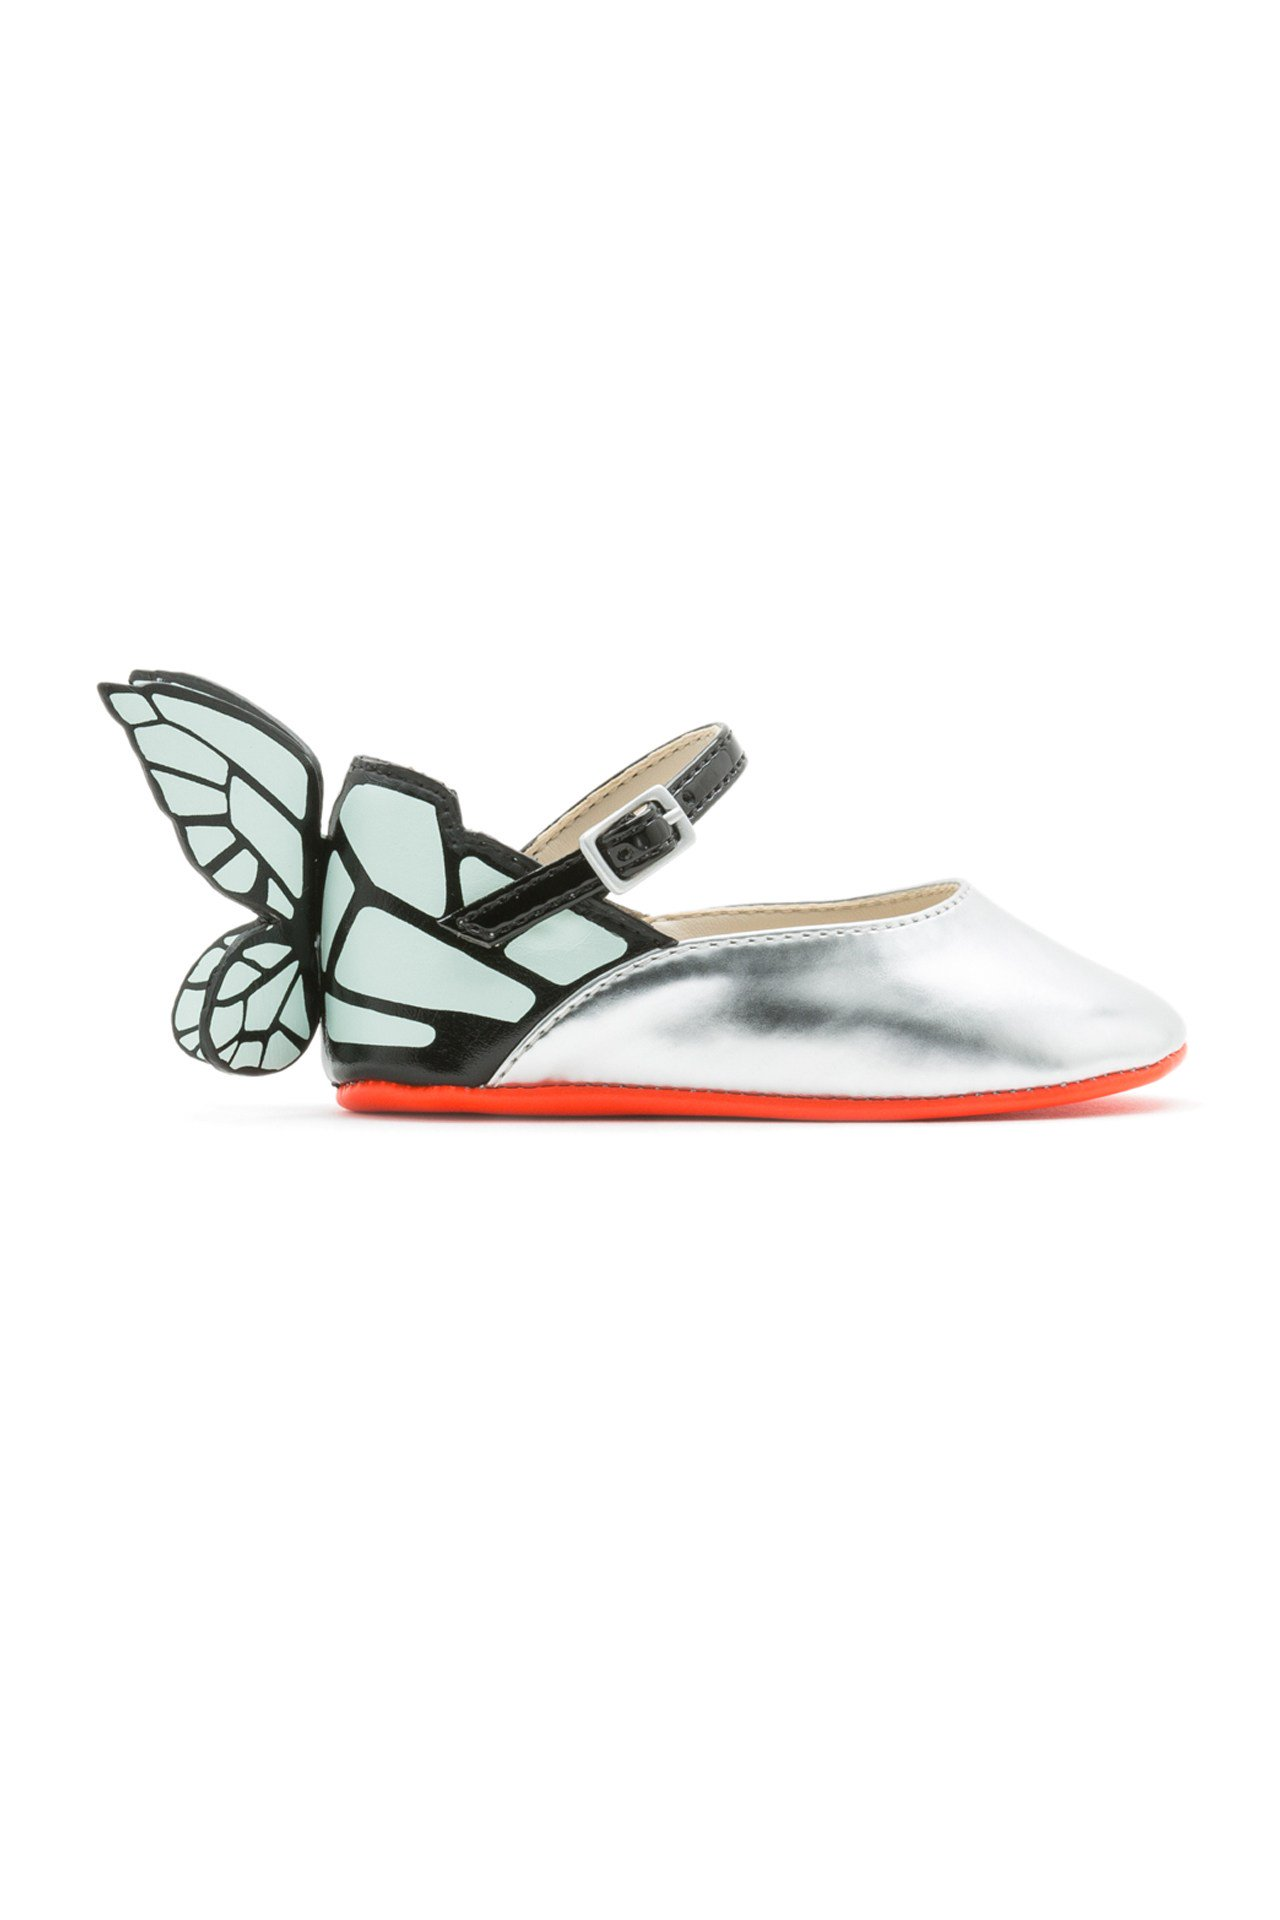 Sparkly, cosy, cool, comfortable: see our definitive edit of party shoes for children: https://t.co/S3wfvlOAQK https://t.co/xH4sTDEkda